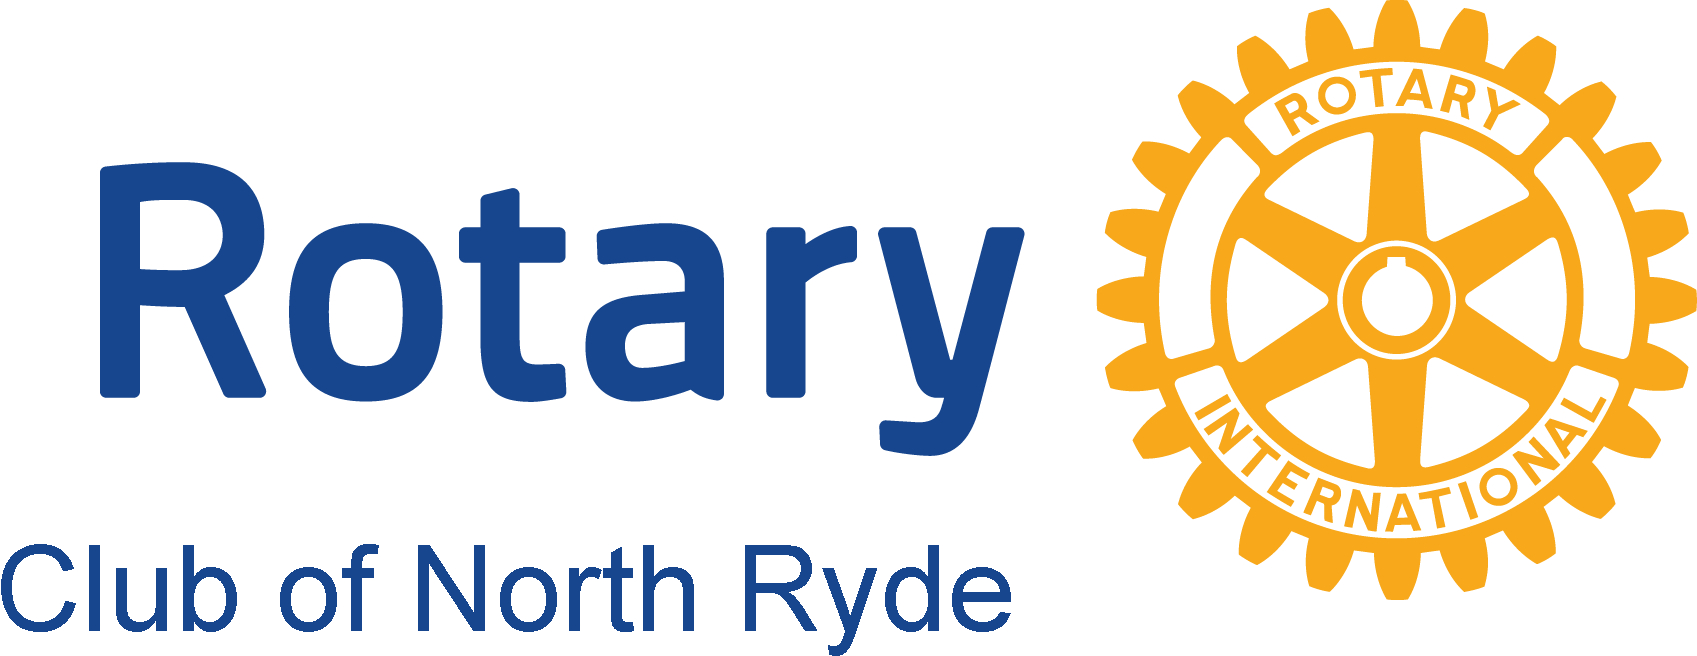 North Ryde logo